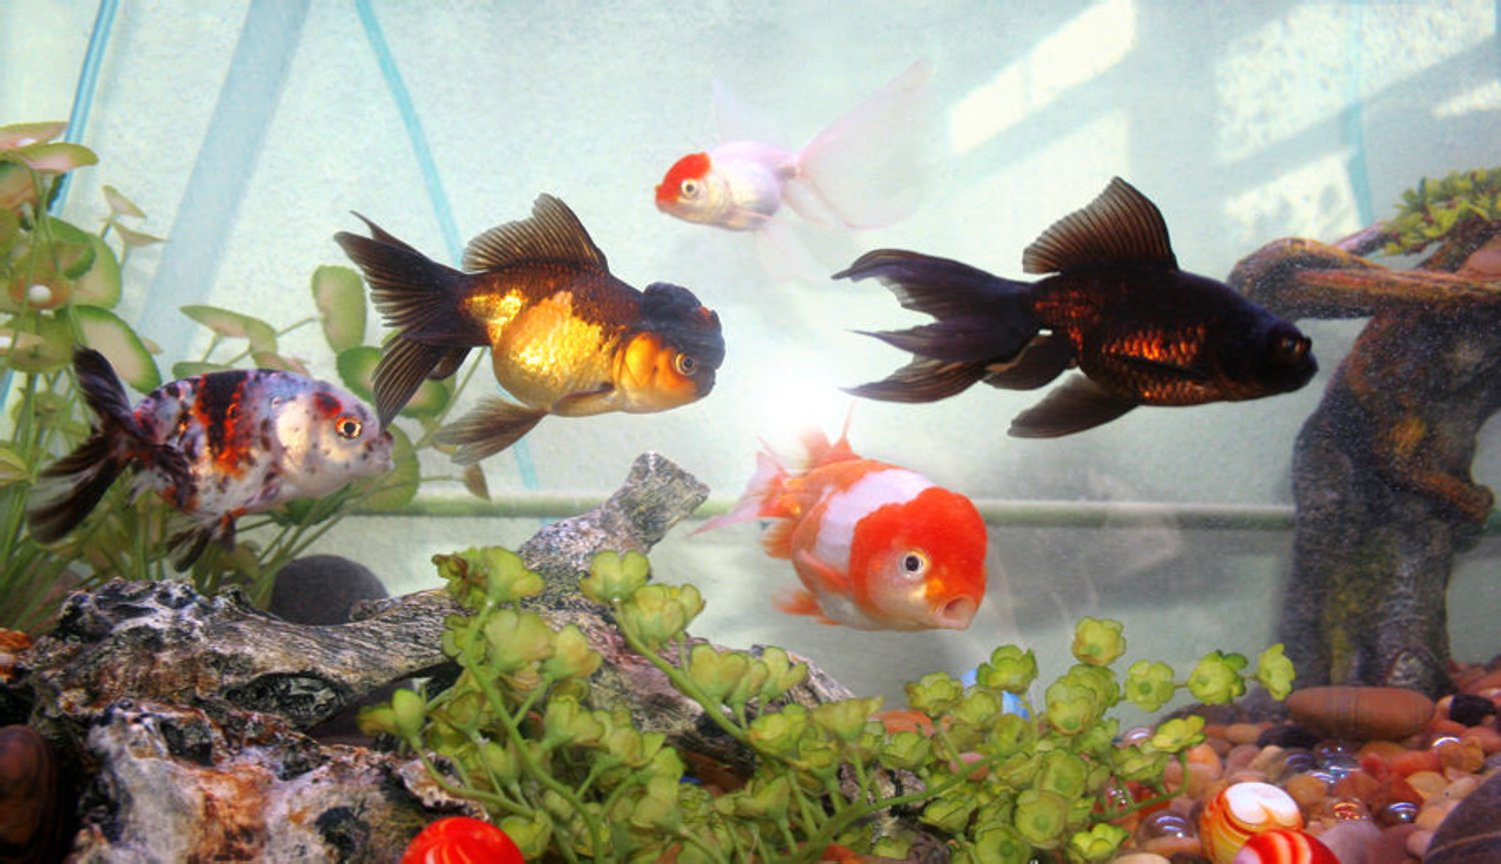 freshwater fish - carassius auratus - chocolate oranda goldfish stocking in 72 gallons tank - fancy goldfish mix